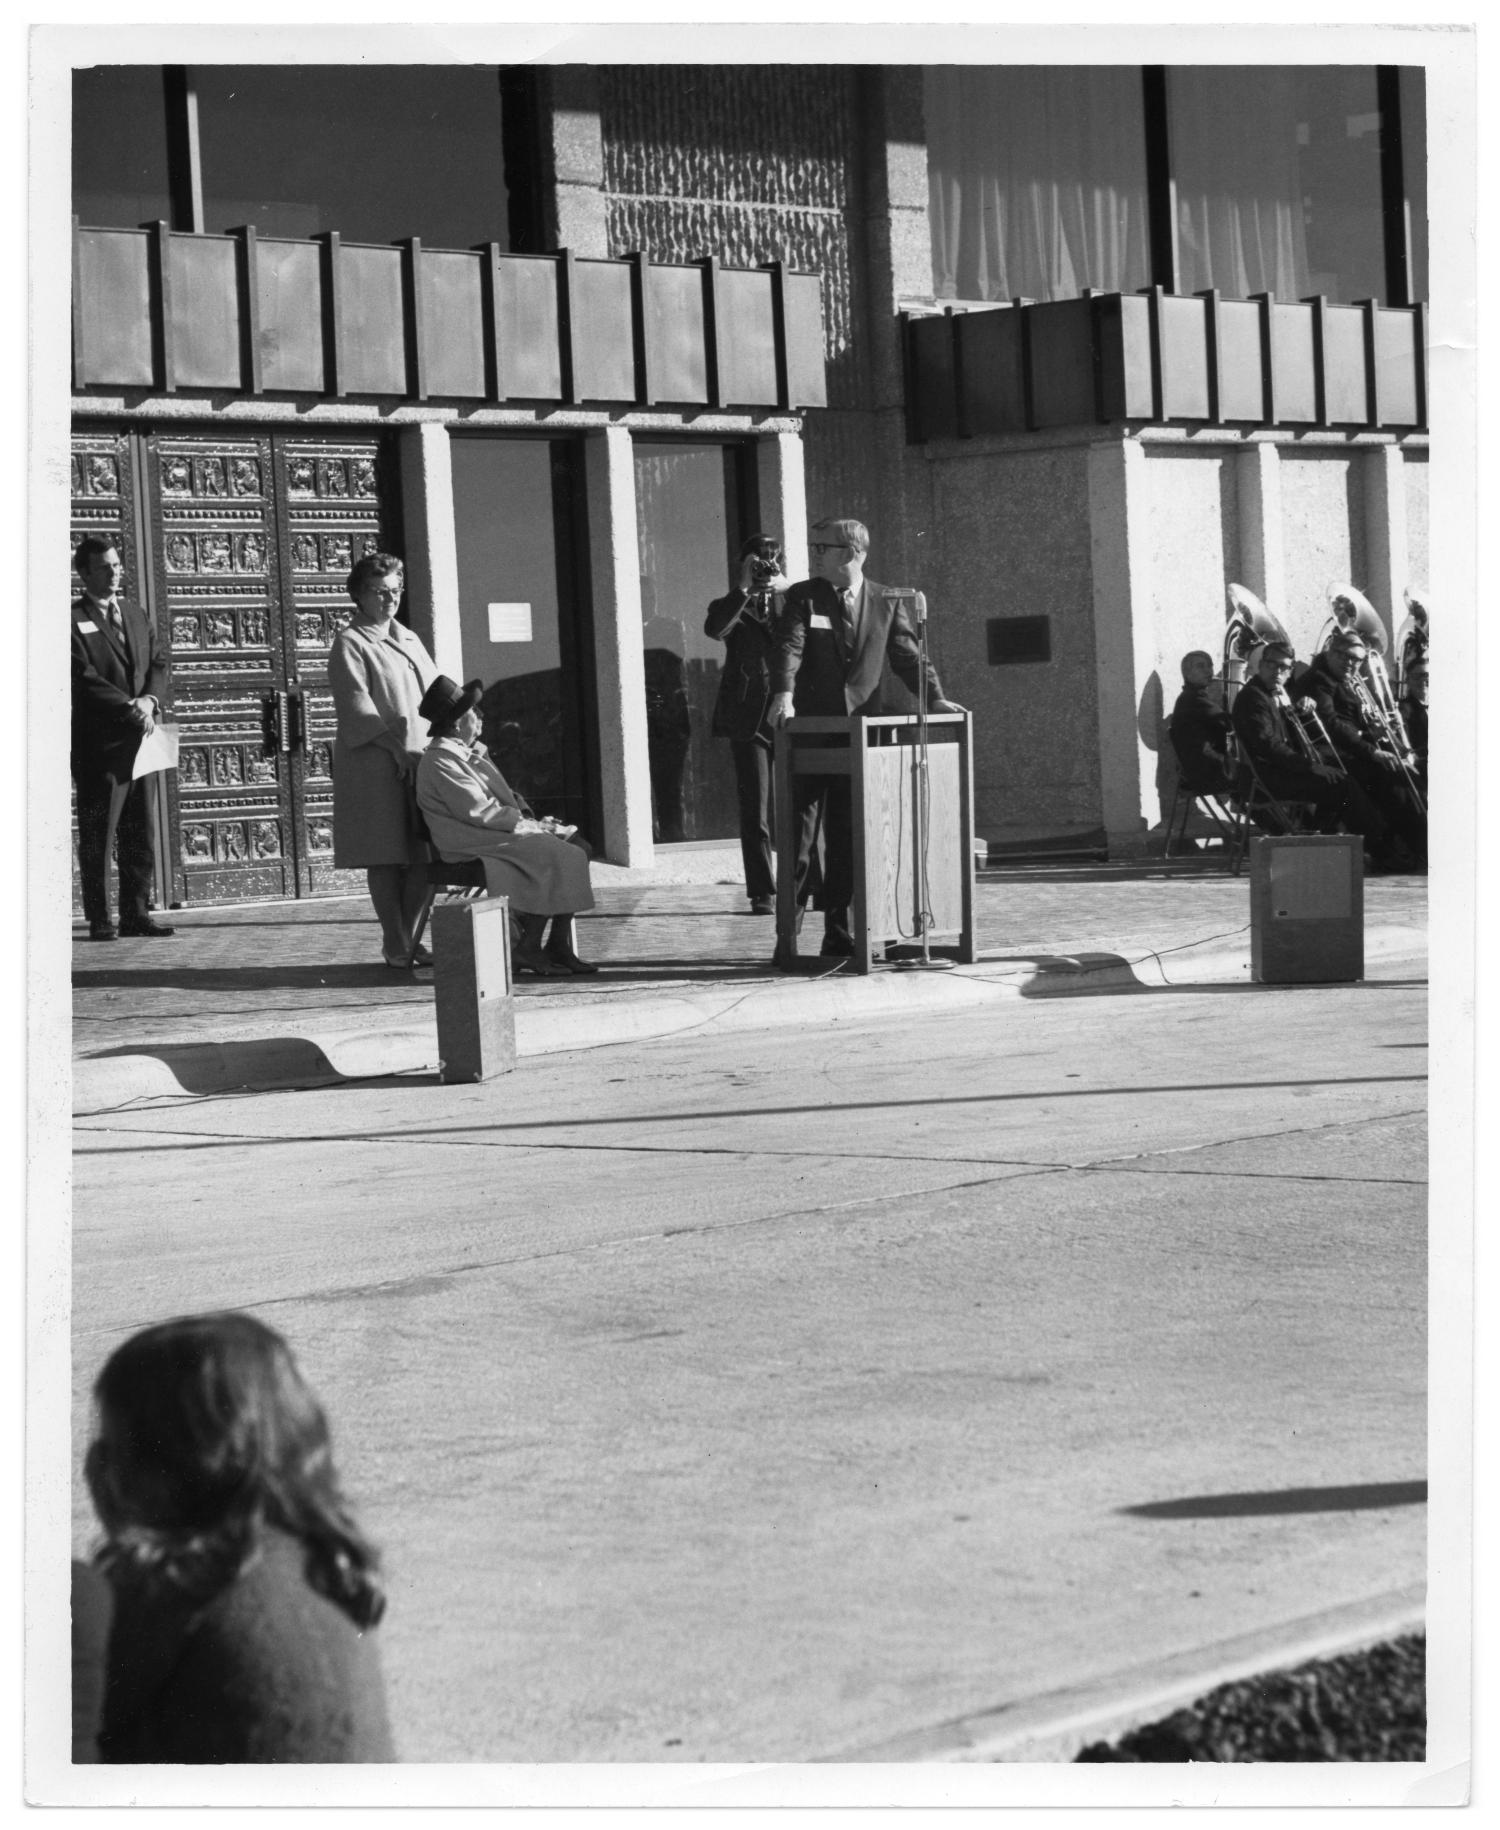 Richardson Public Library, Photograph of a group of people at the opening of the new, four-story Richardson Public Library on 900 Civic Center Drive in Richardson, Texas. One man is standing at a podium, one man is sitting to his left, and one woman is standing behind the seated man. They are identified as Mayor Ray Noah, James V. Kincaid (Chairman of Library Board), and Marguerite Anderson (librarian). To the far right, there are members of a band sitting. In the background, there is a view of the library.,